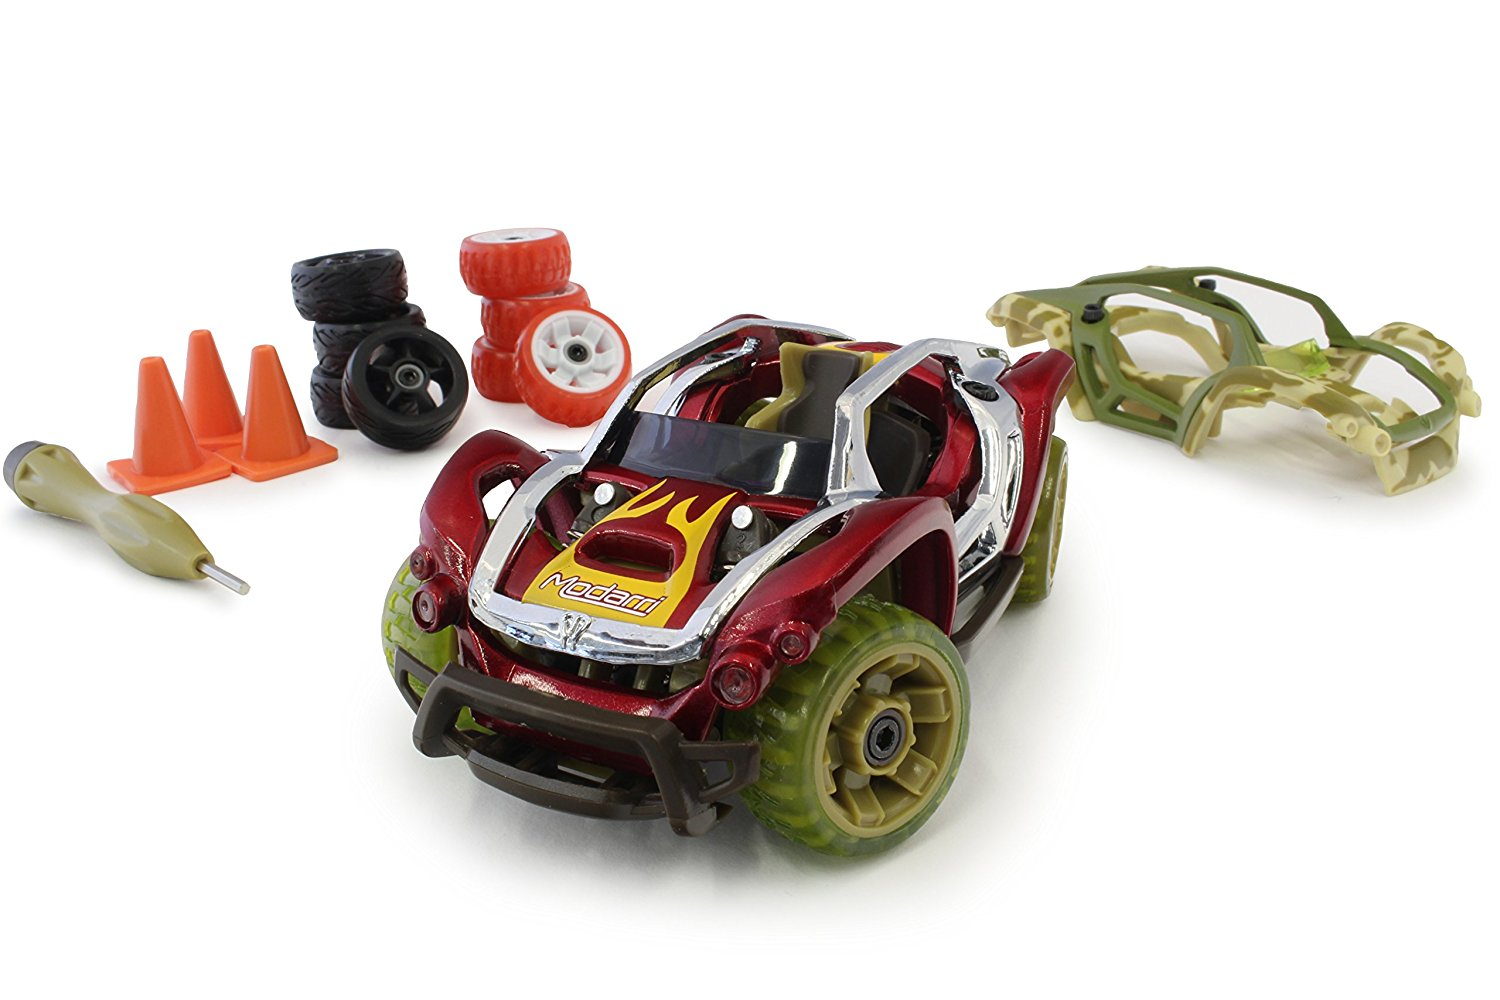 Modarri X1 Camo Dirt Car Bundle – Ultimate Toy Car: Fully Customizable – Mix and Match For Thousands of Designs – Real Steering and Suspension – Educational Construction Toy For Kids